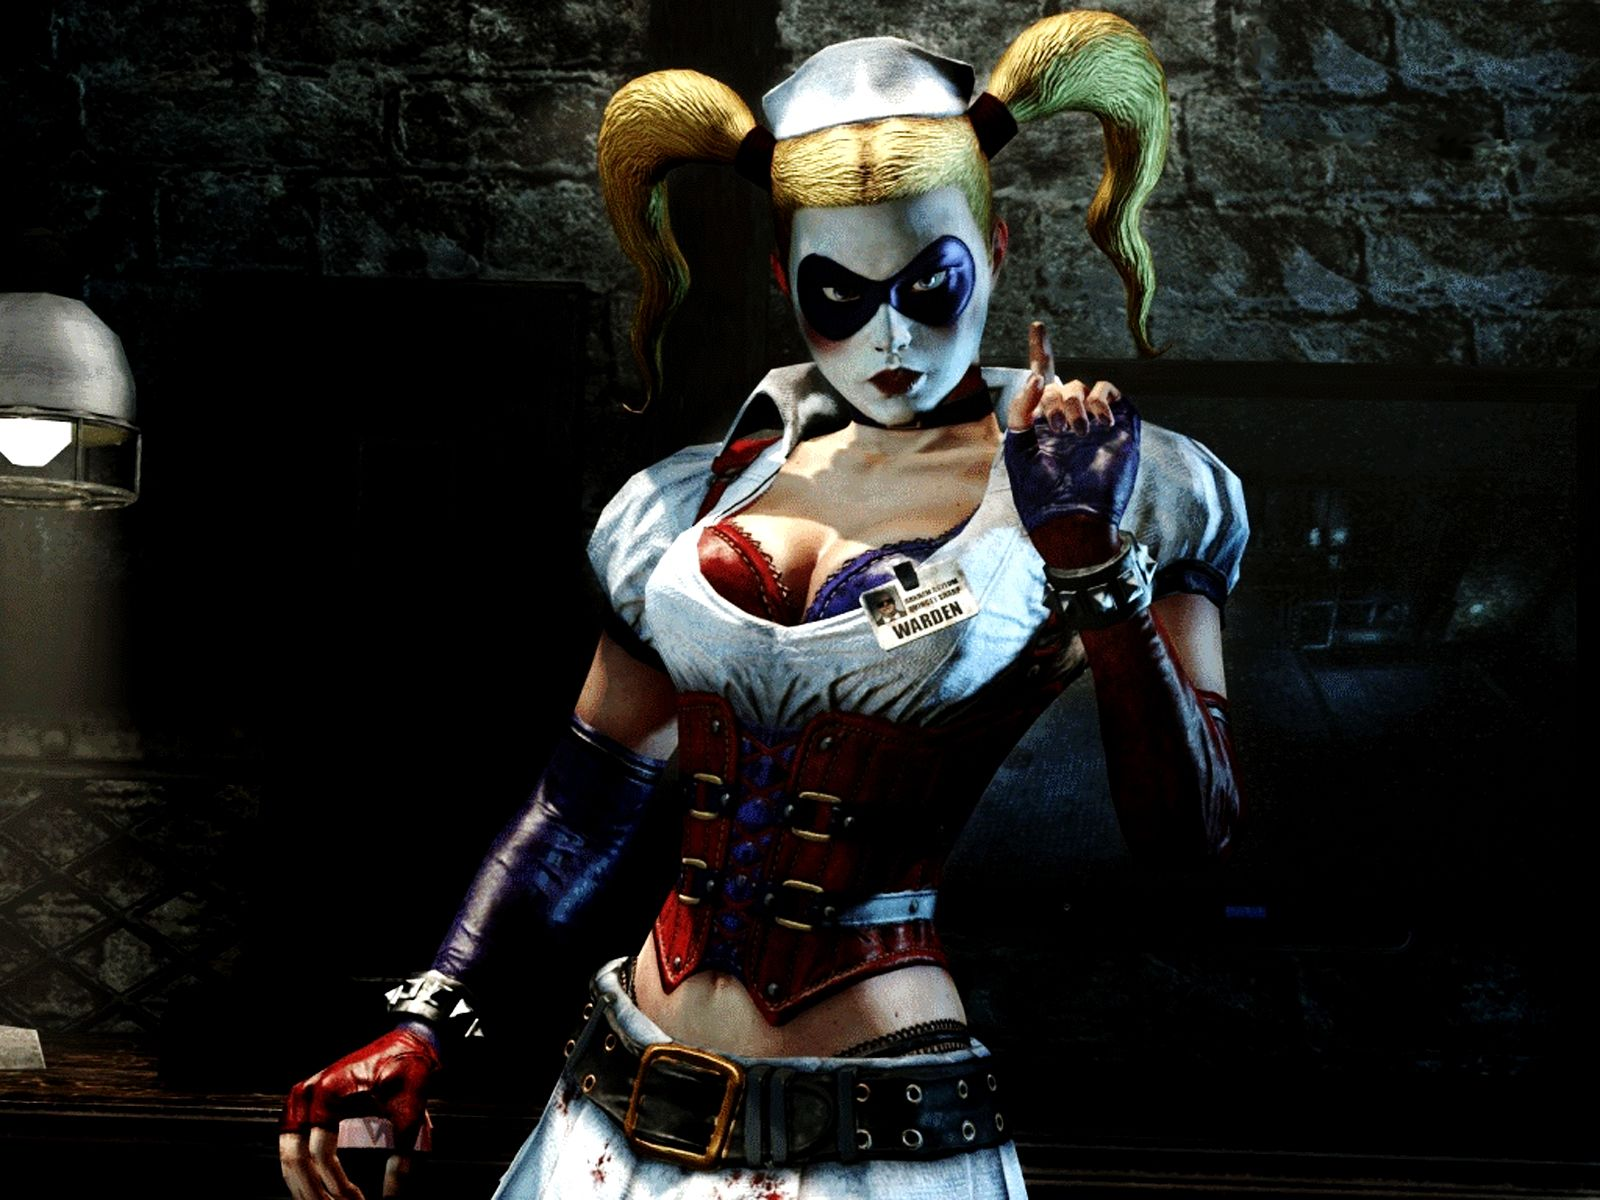 Harley quinn art harley quinn dc comics hd wallpapers download harley quinn art harley quinn dc comics hd wallpapers download free wallpapers in hd voltagebd Images